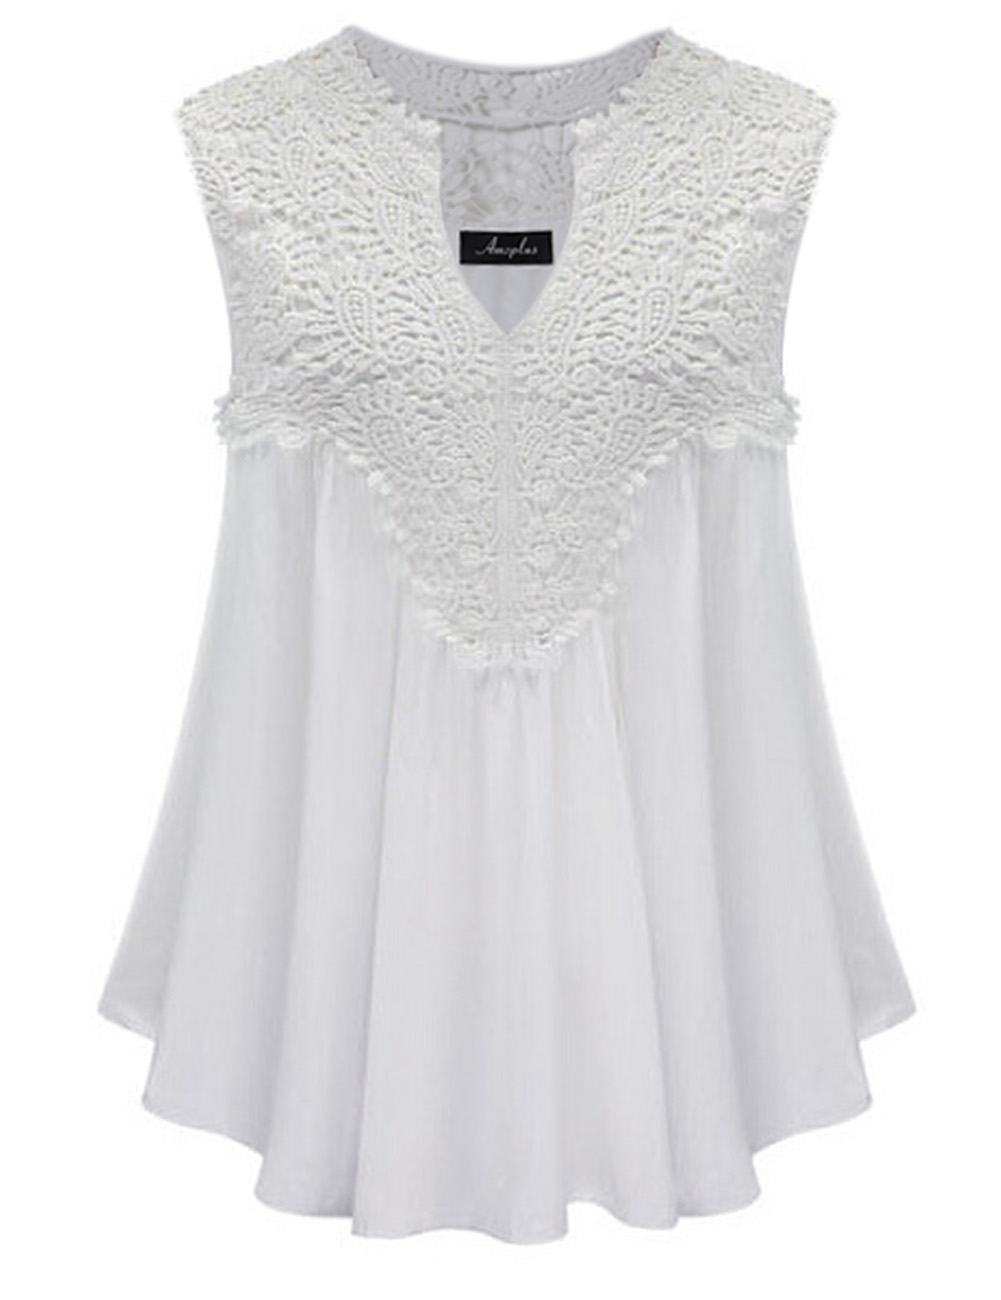 AMZ PLUS Women Sleeveless Lace Pleated Plus Size Top Chiffon Blouse